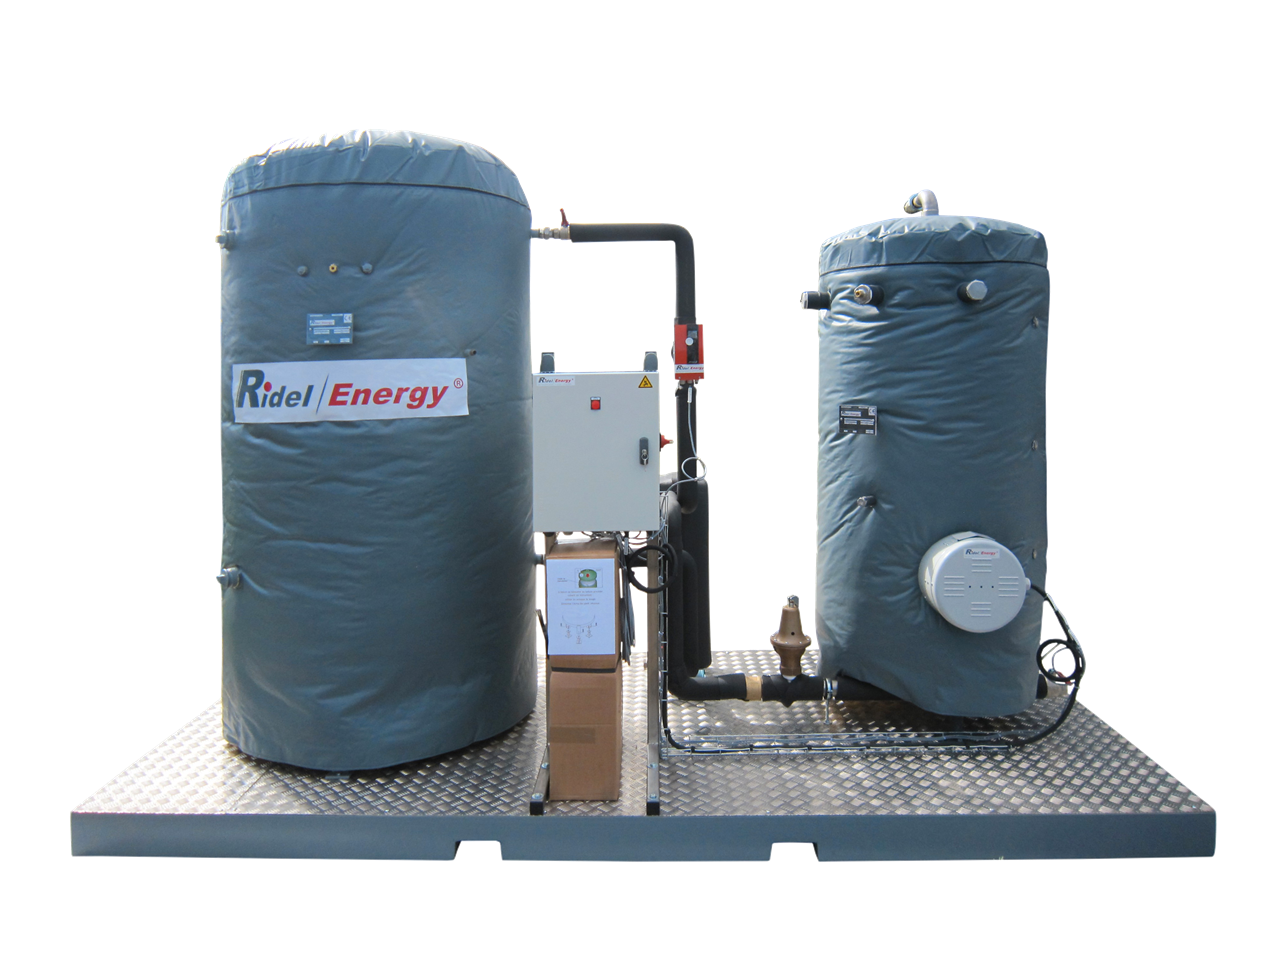 Complete solution for production of hot water PackRidel Ridel Energy